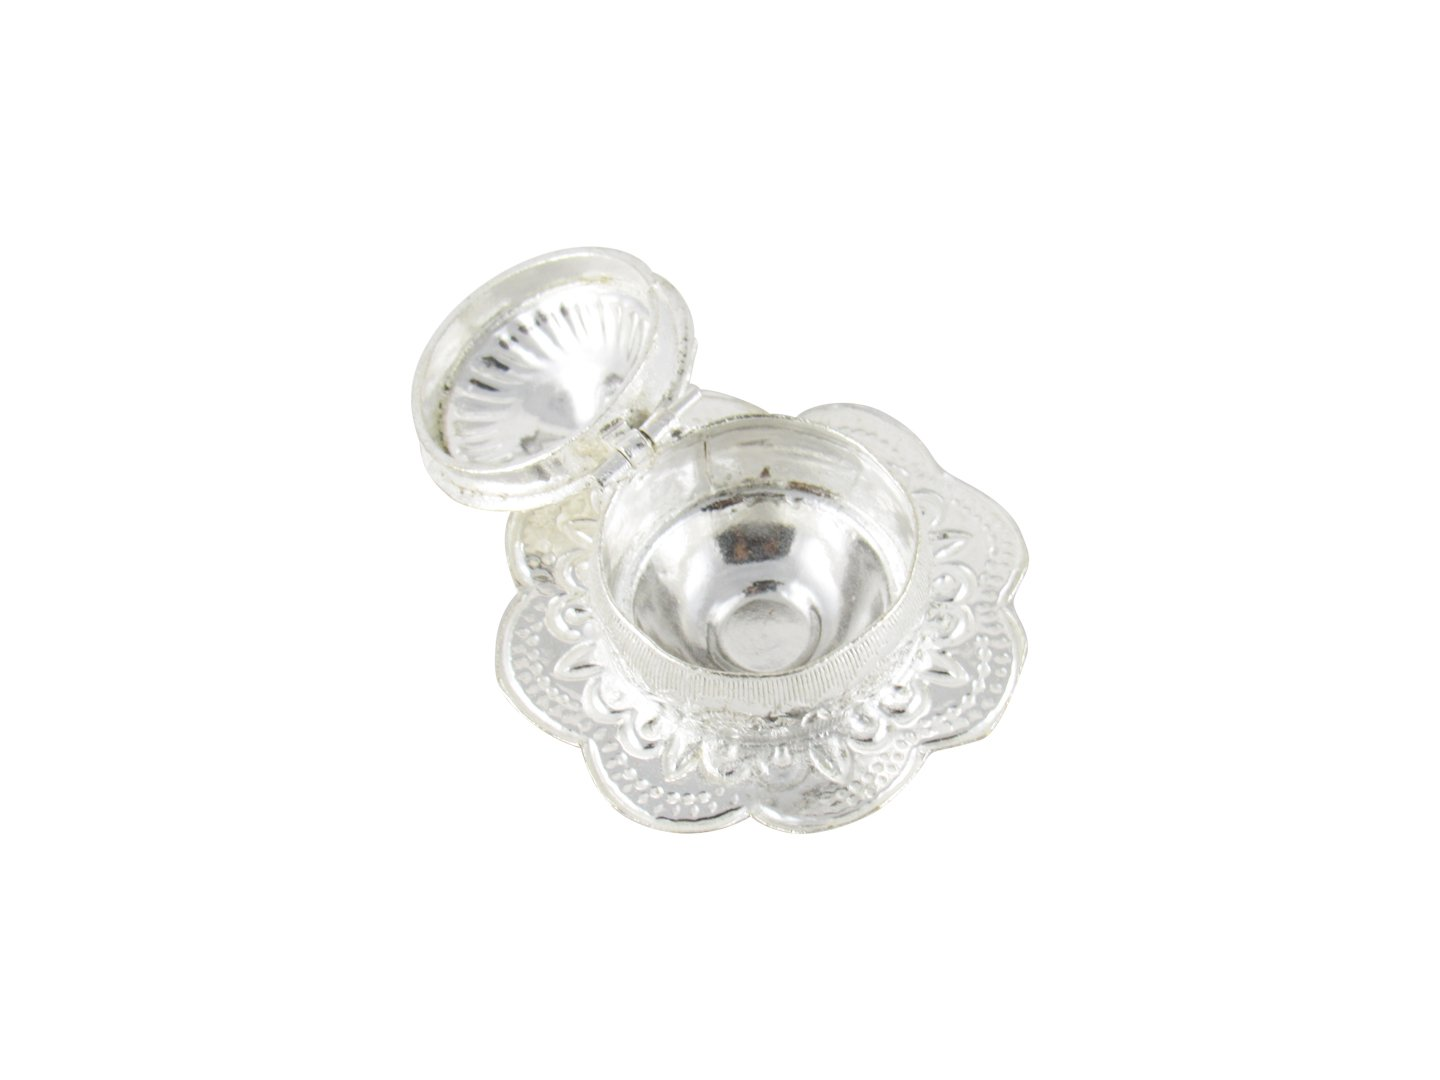 Clipart jewellers silver pooja items png free library GoldGiftIdeas Silver Plated Flower Kankavati with Lid, Pooja Items for  Home, Return Gift for Wedding and Housewarming with Designer Potli Bags png free library